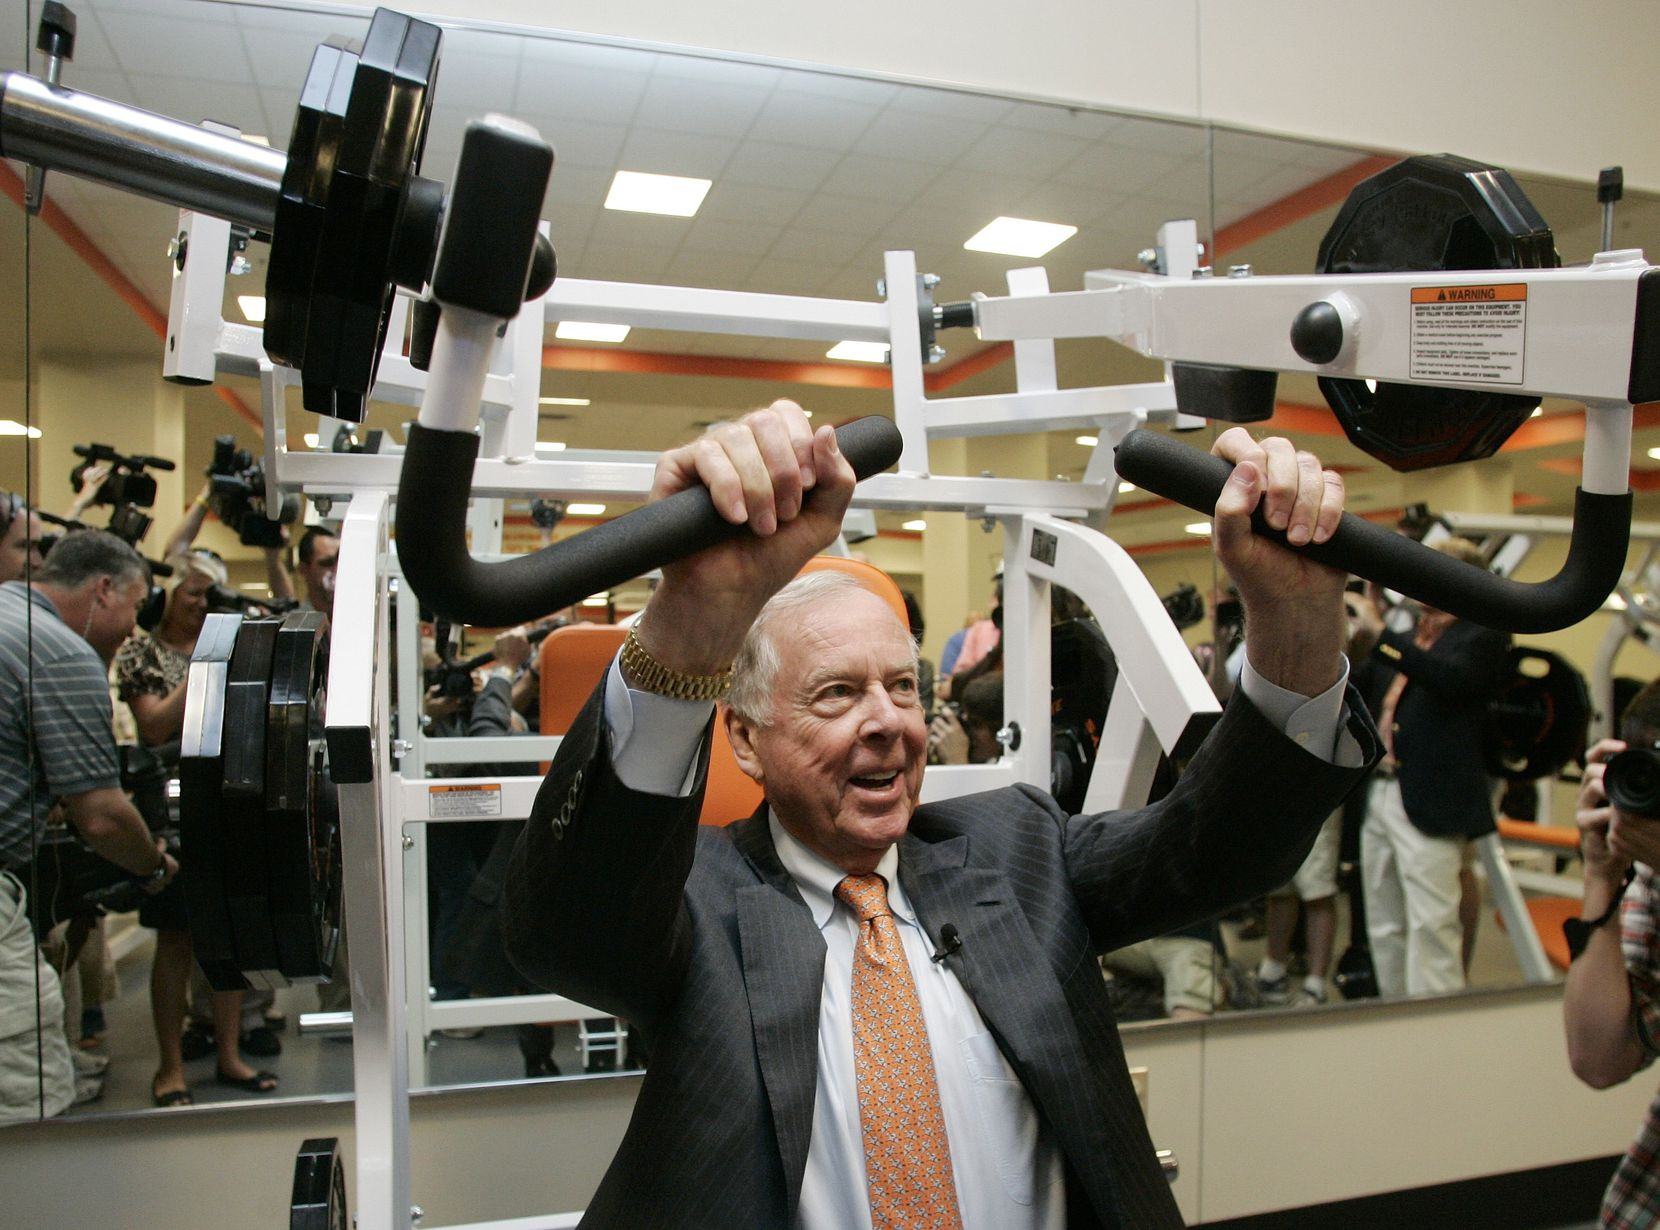 Pickens tried out a machine in the new weight room at Oklahoma State in 2009. Through a series of donations, Pickens provided the bulk of the funding for a $286 million stadium overhaul.